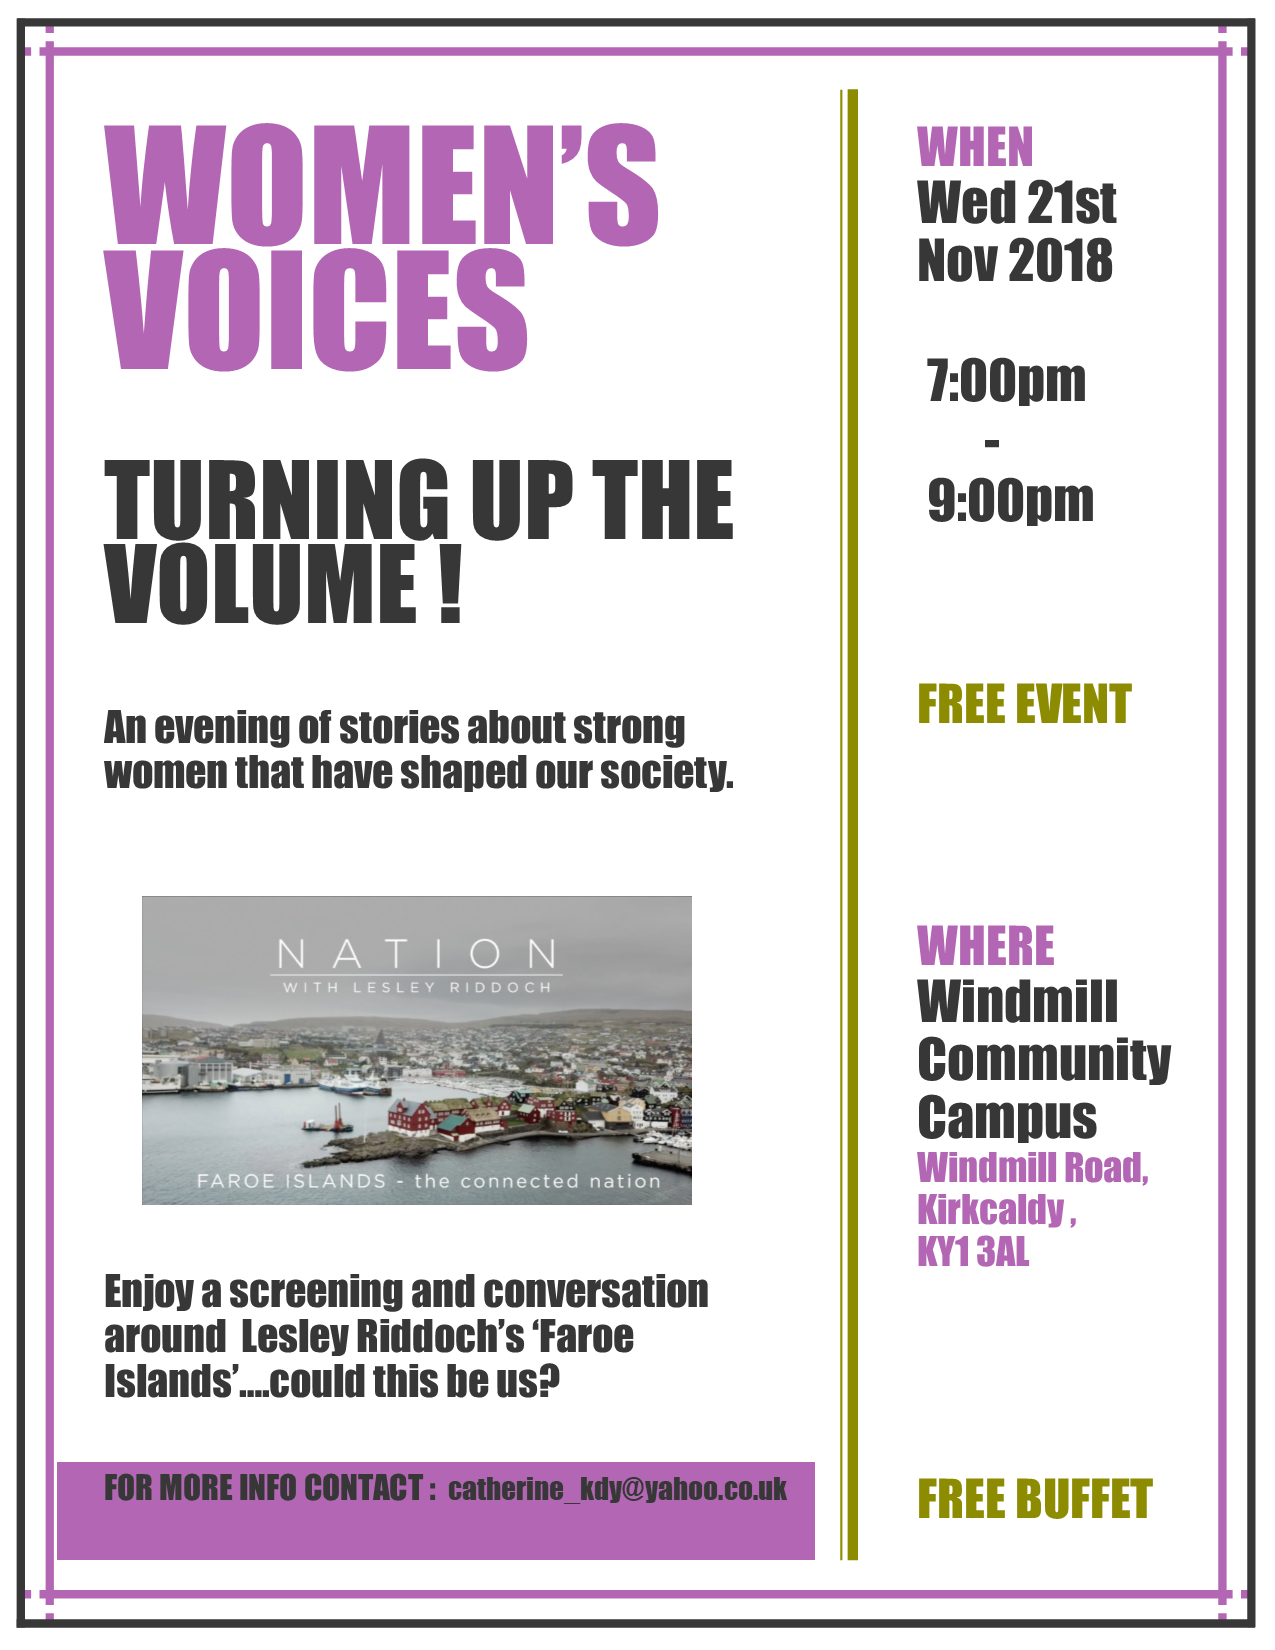 An evening of stories about strong women who have shaped our society